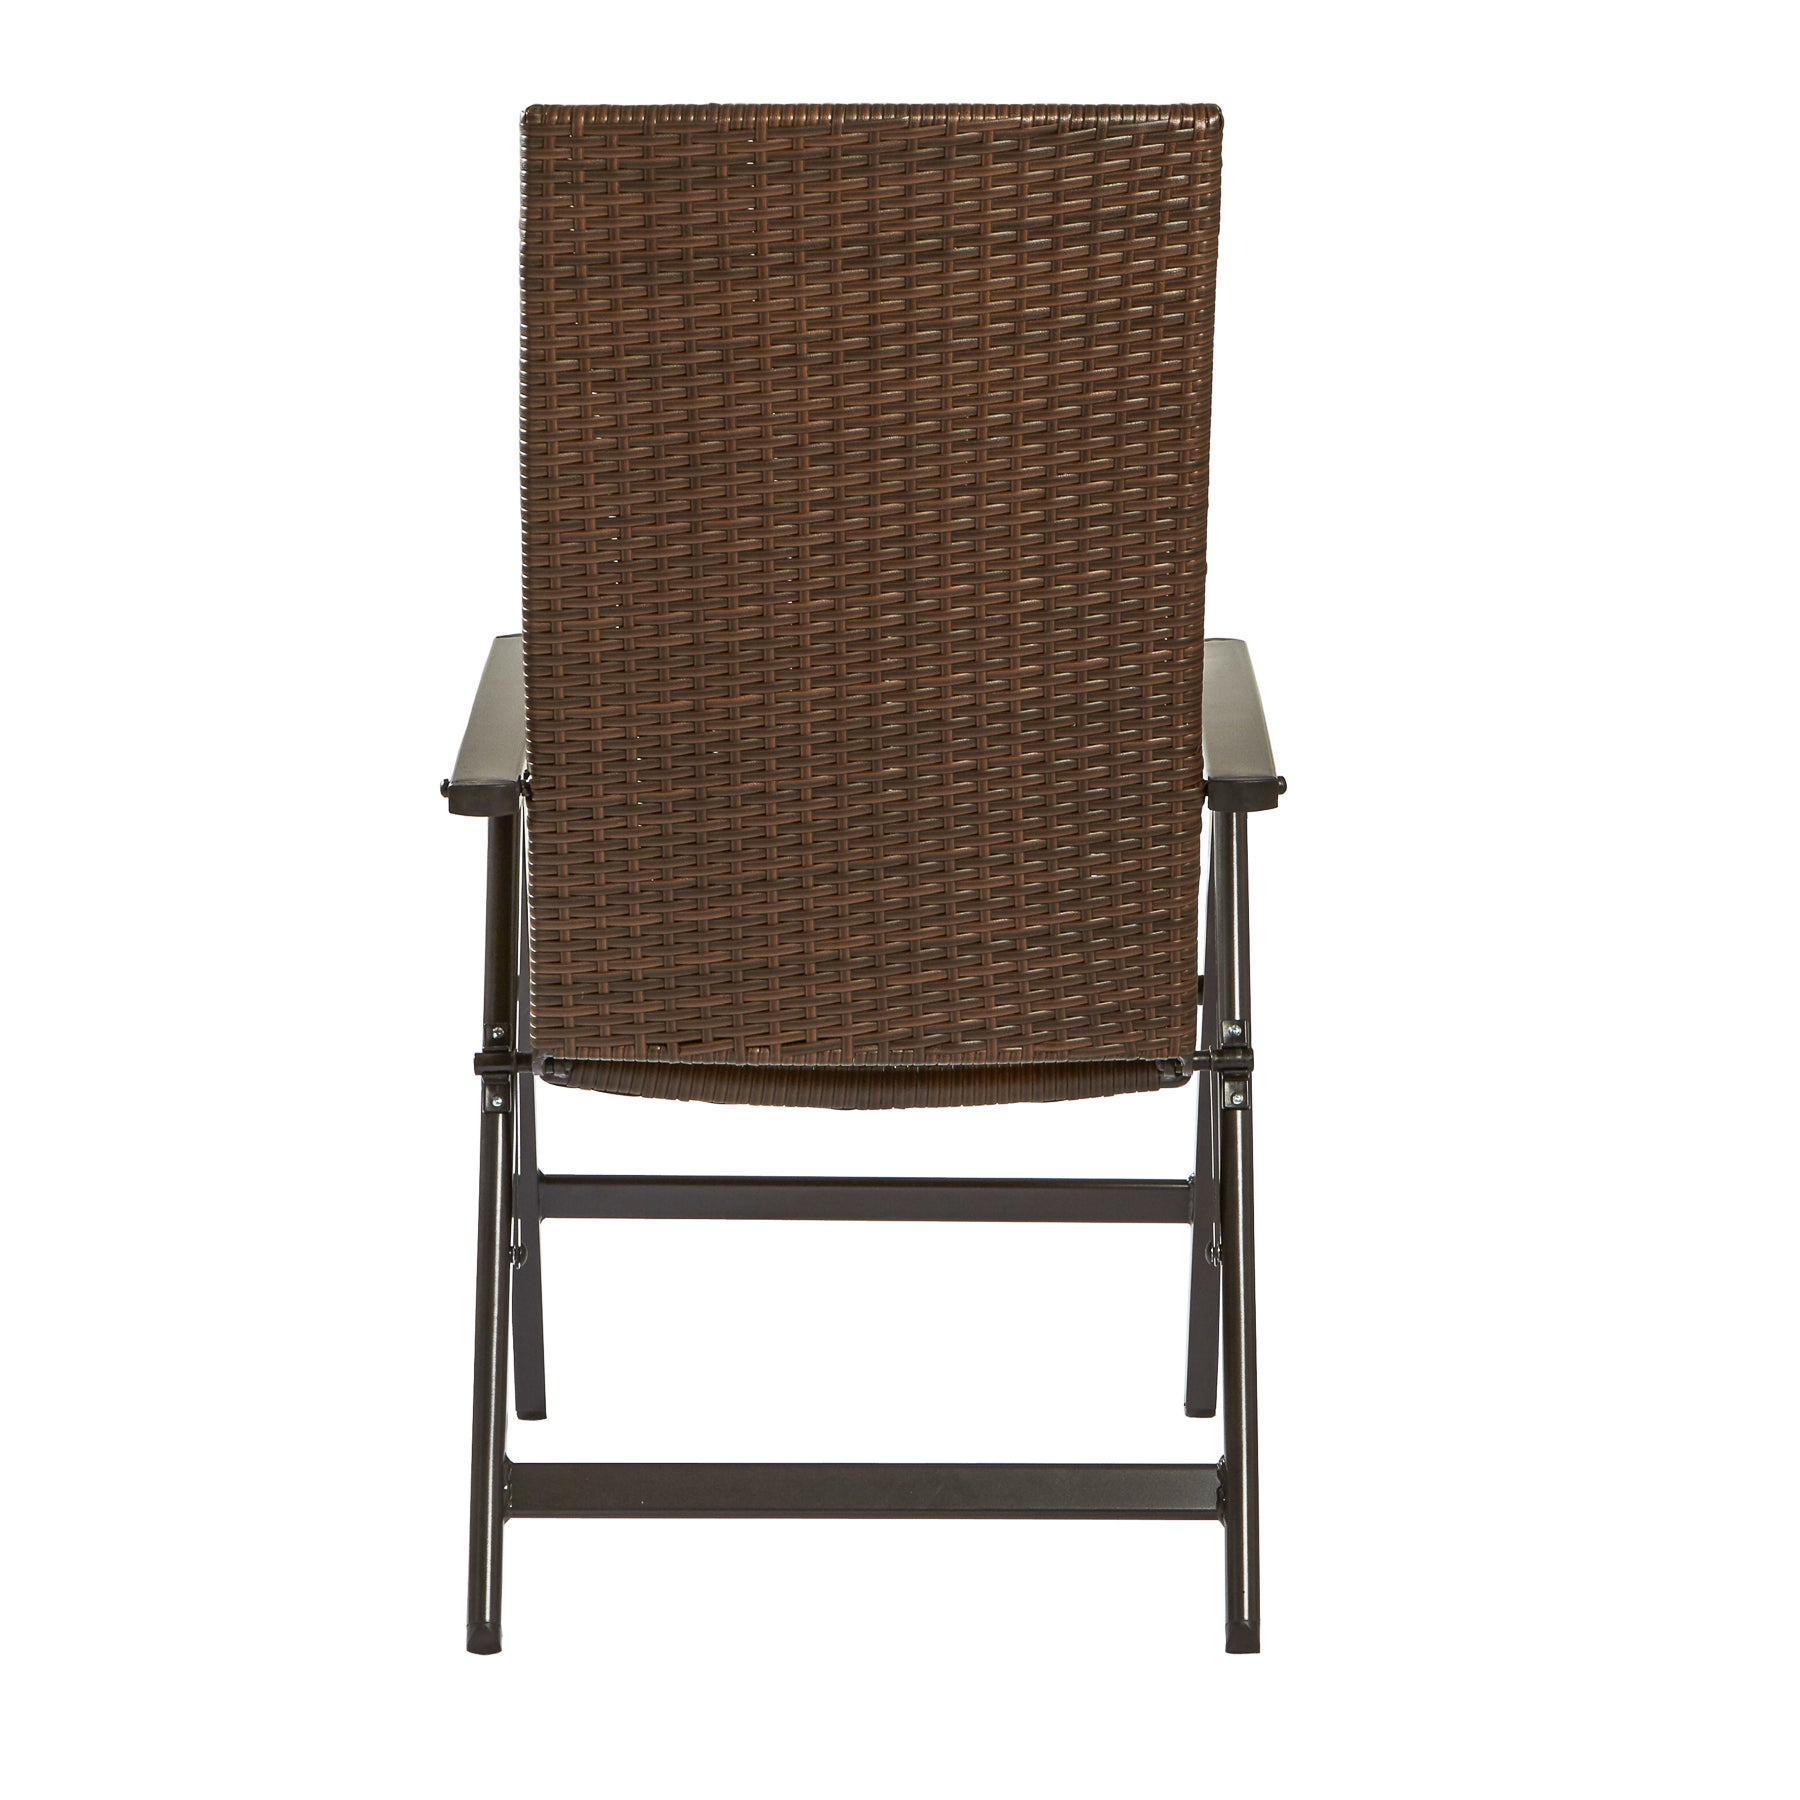 Shop Clay Alder Home Robyville Brown PE Wicker Hand Woven Outdoor ...